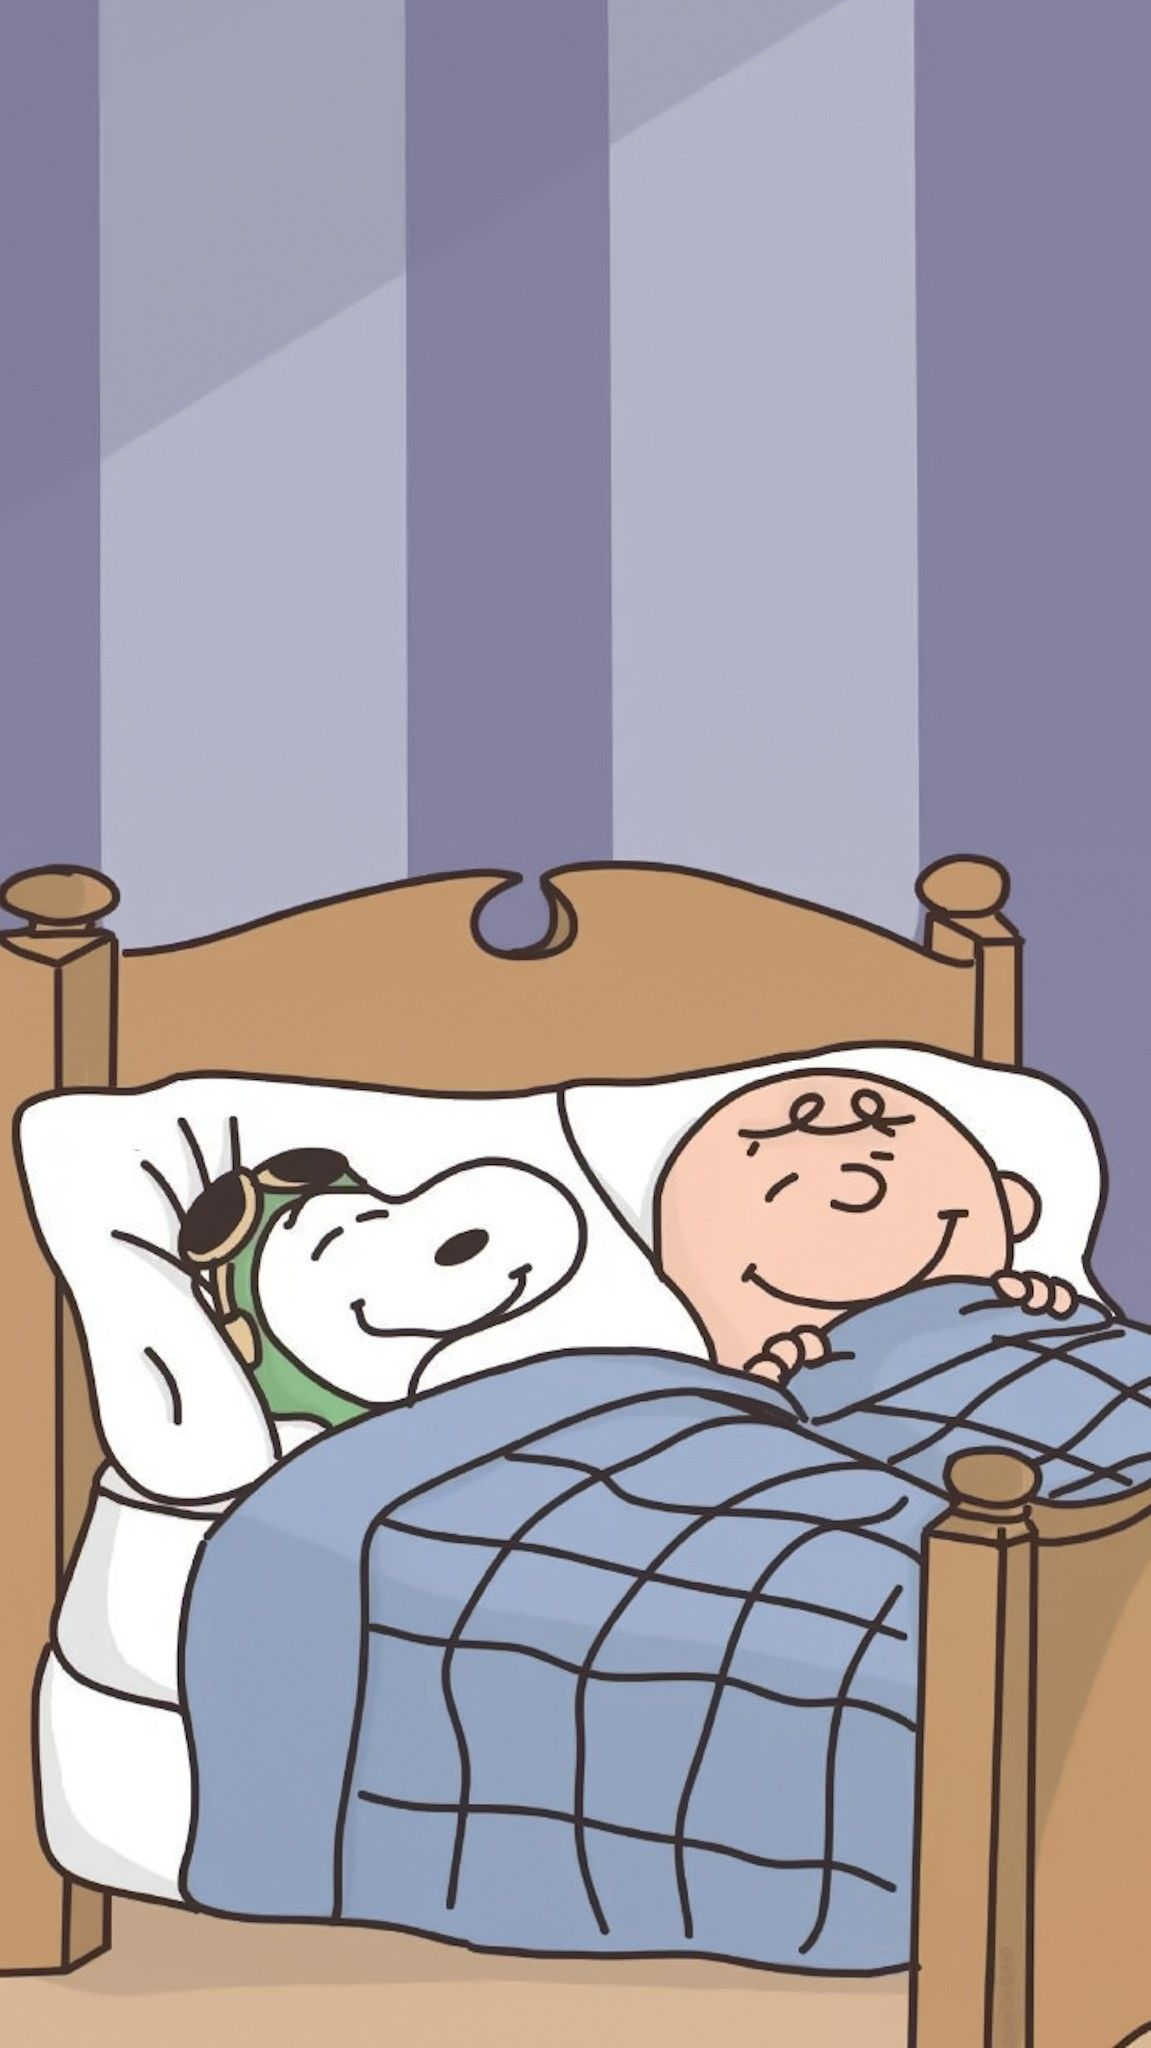 Pin by Linda Scales on Snoopy in 2020 Snoopy wallpaper